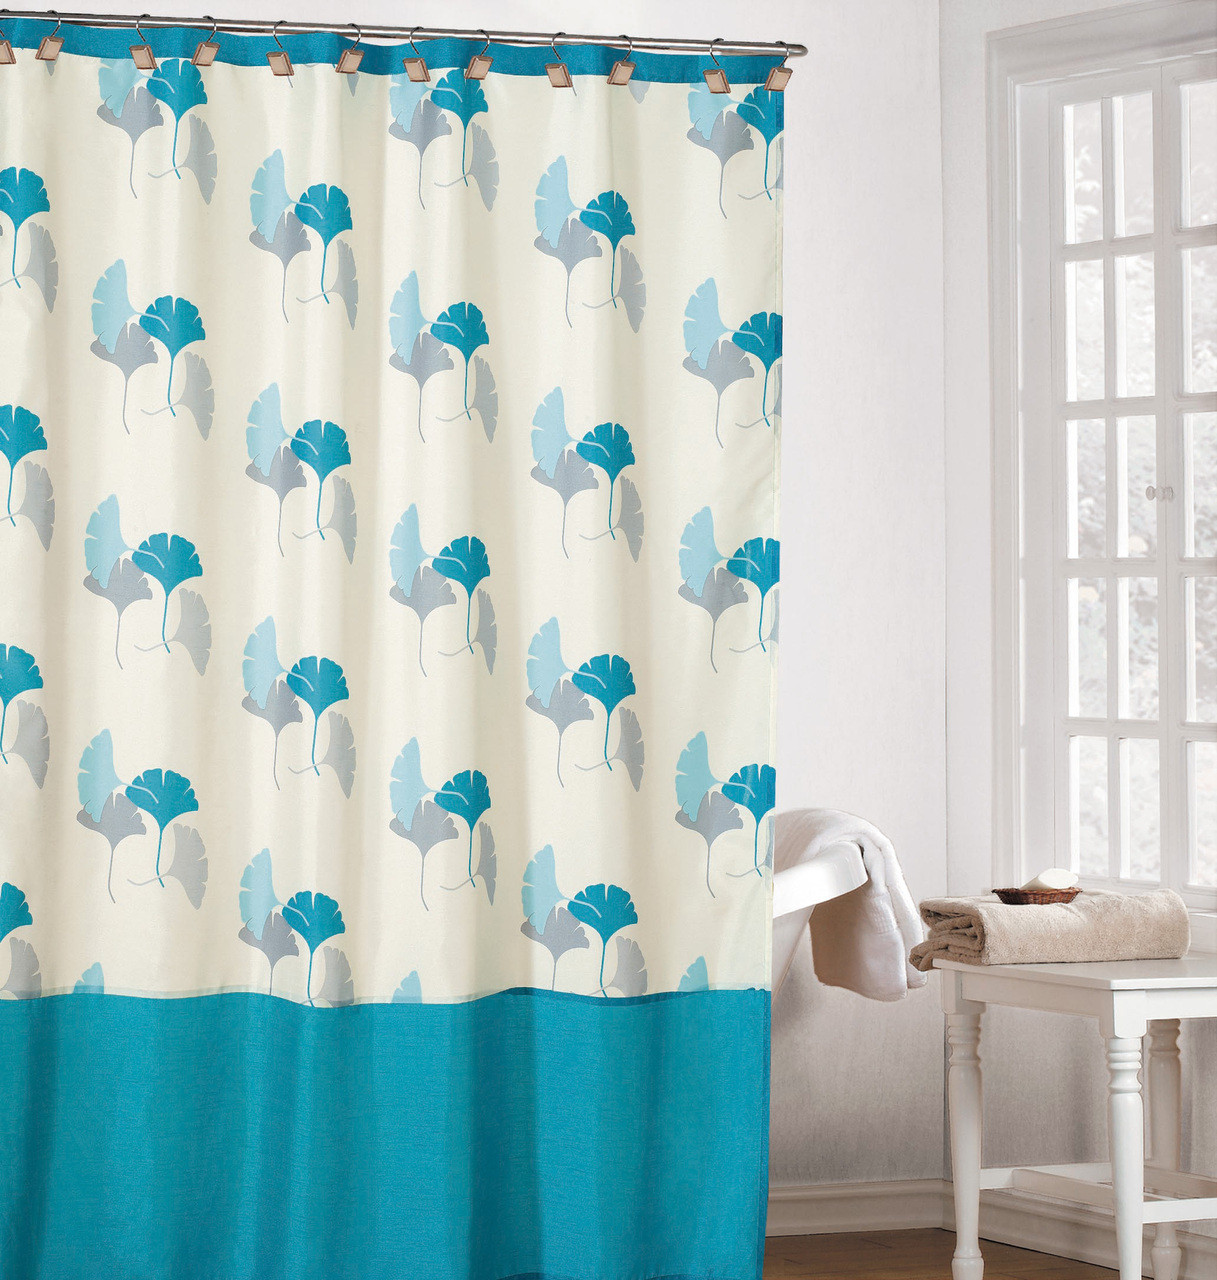 Refreshing Off White Color Fabric Shower Curtain With